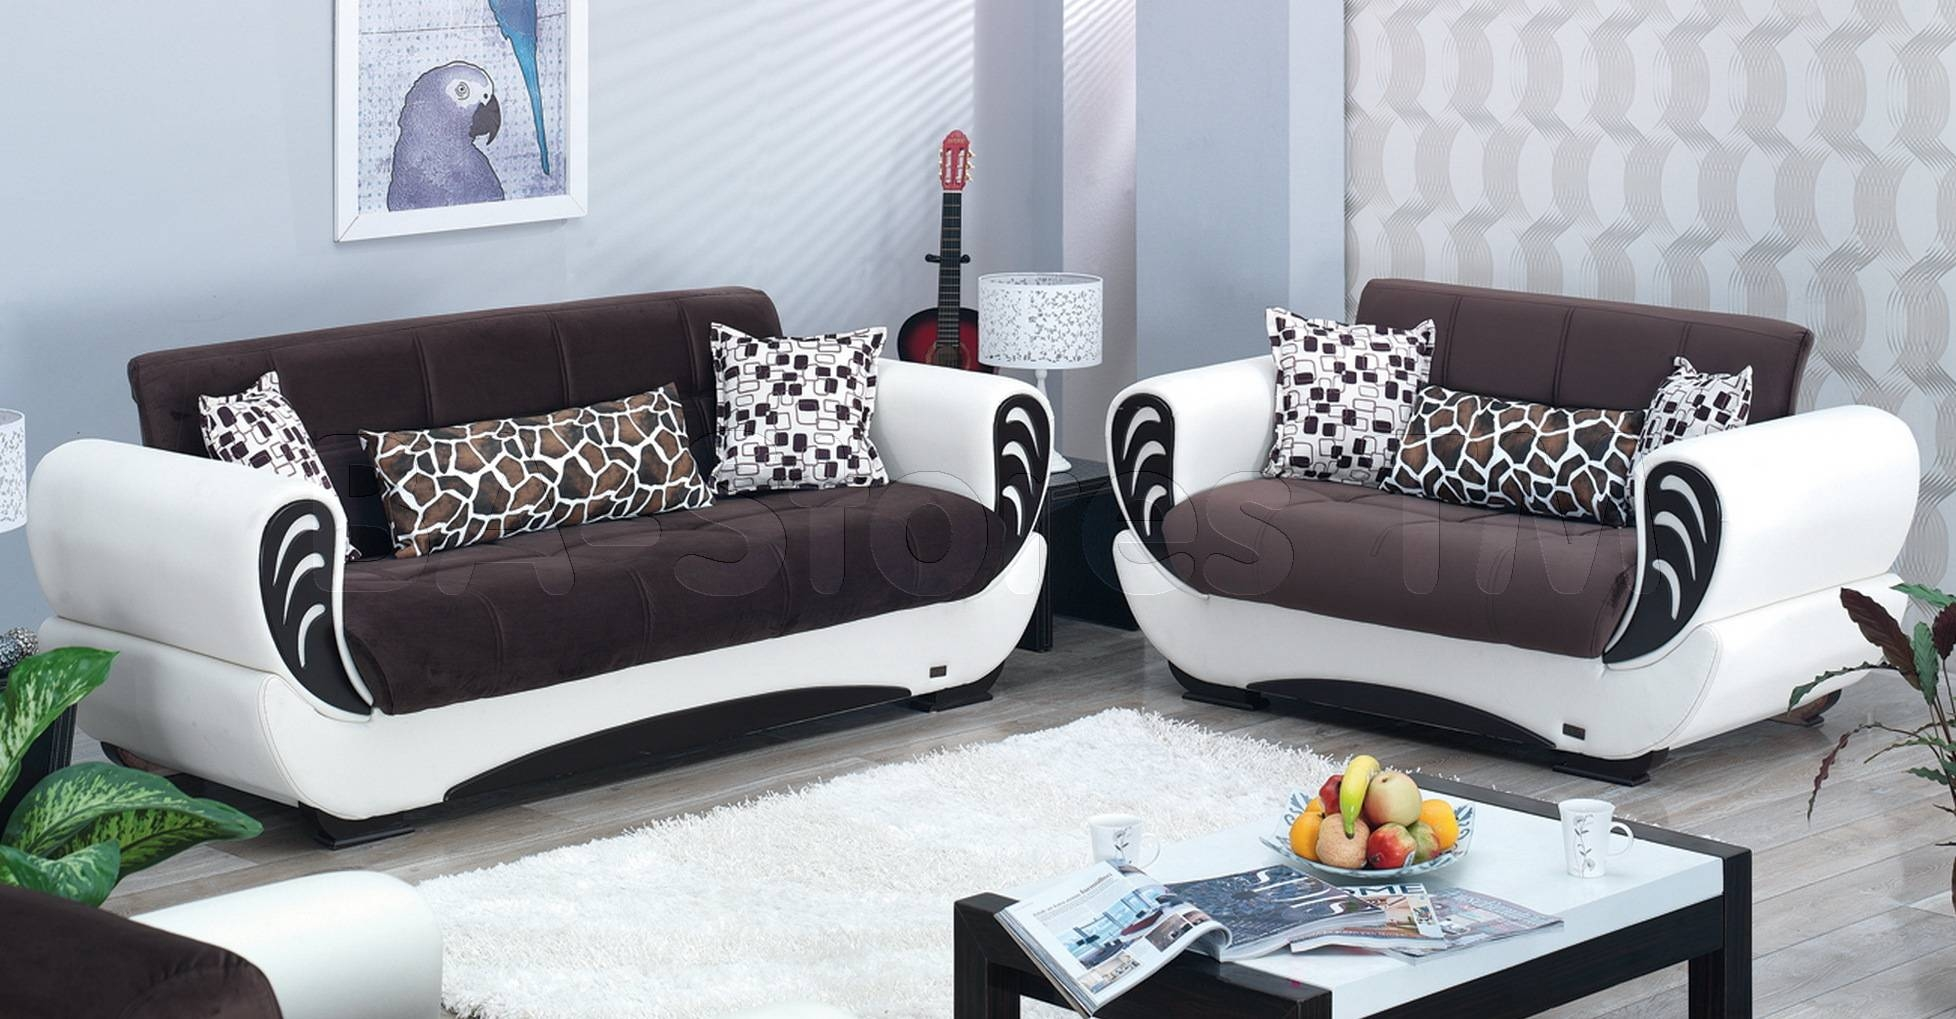 Sale: $1398.00 San Francisco 2 Pc Two-Toned Brown And White Sofa for Two Tone Sofas (Image 21 of 30)